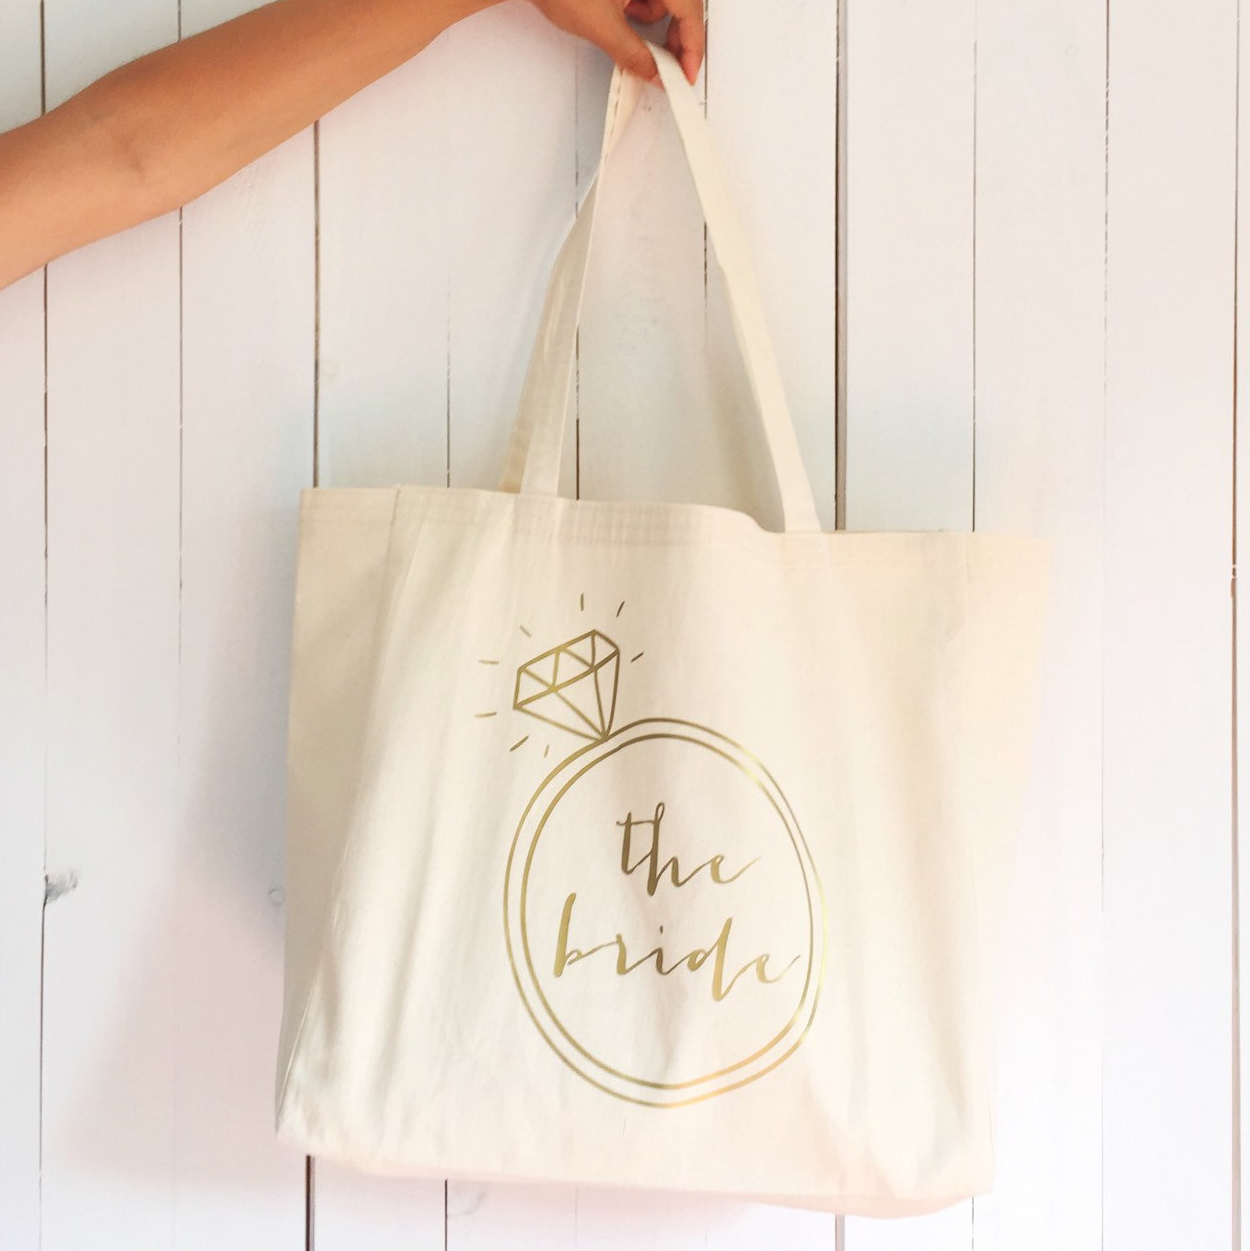 Adorable bride tote bag, awesome bride-to-be gift!